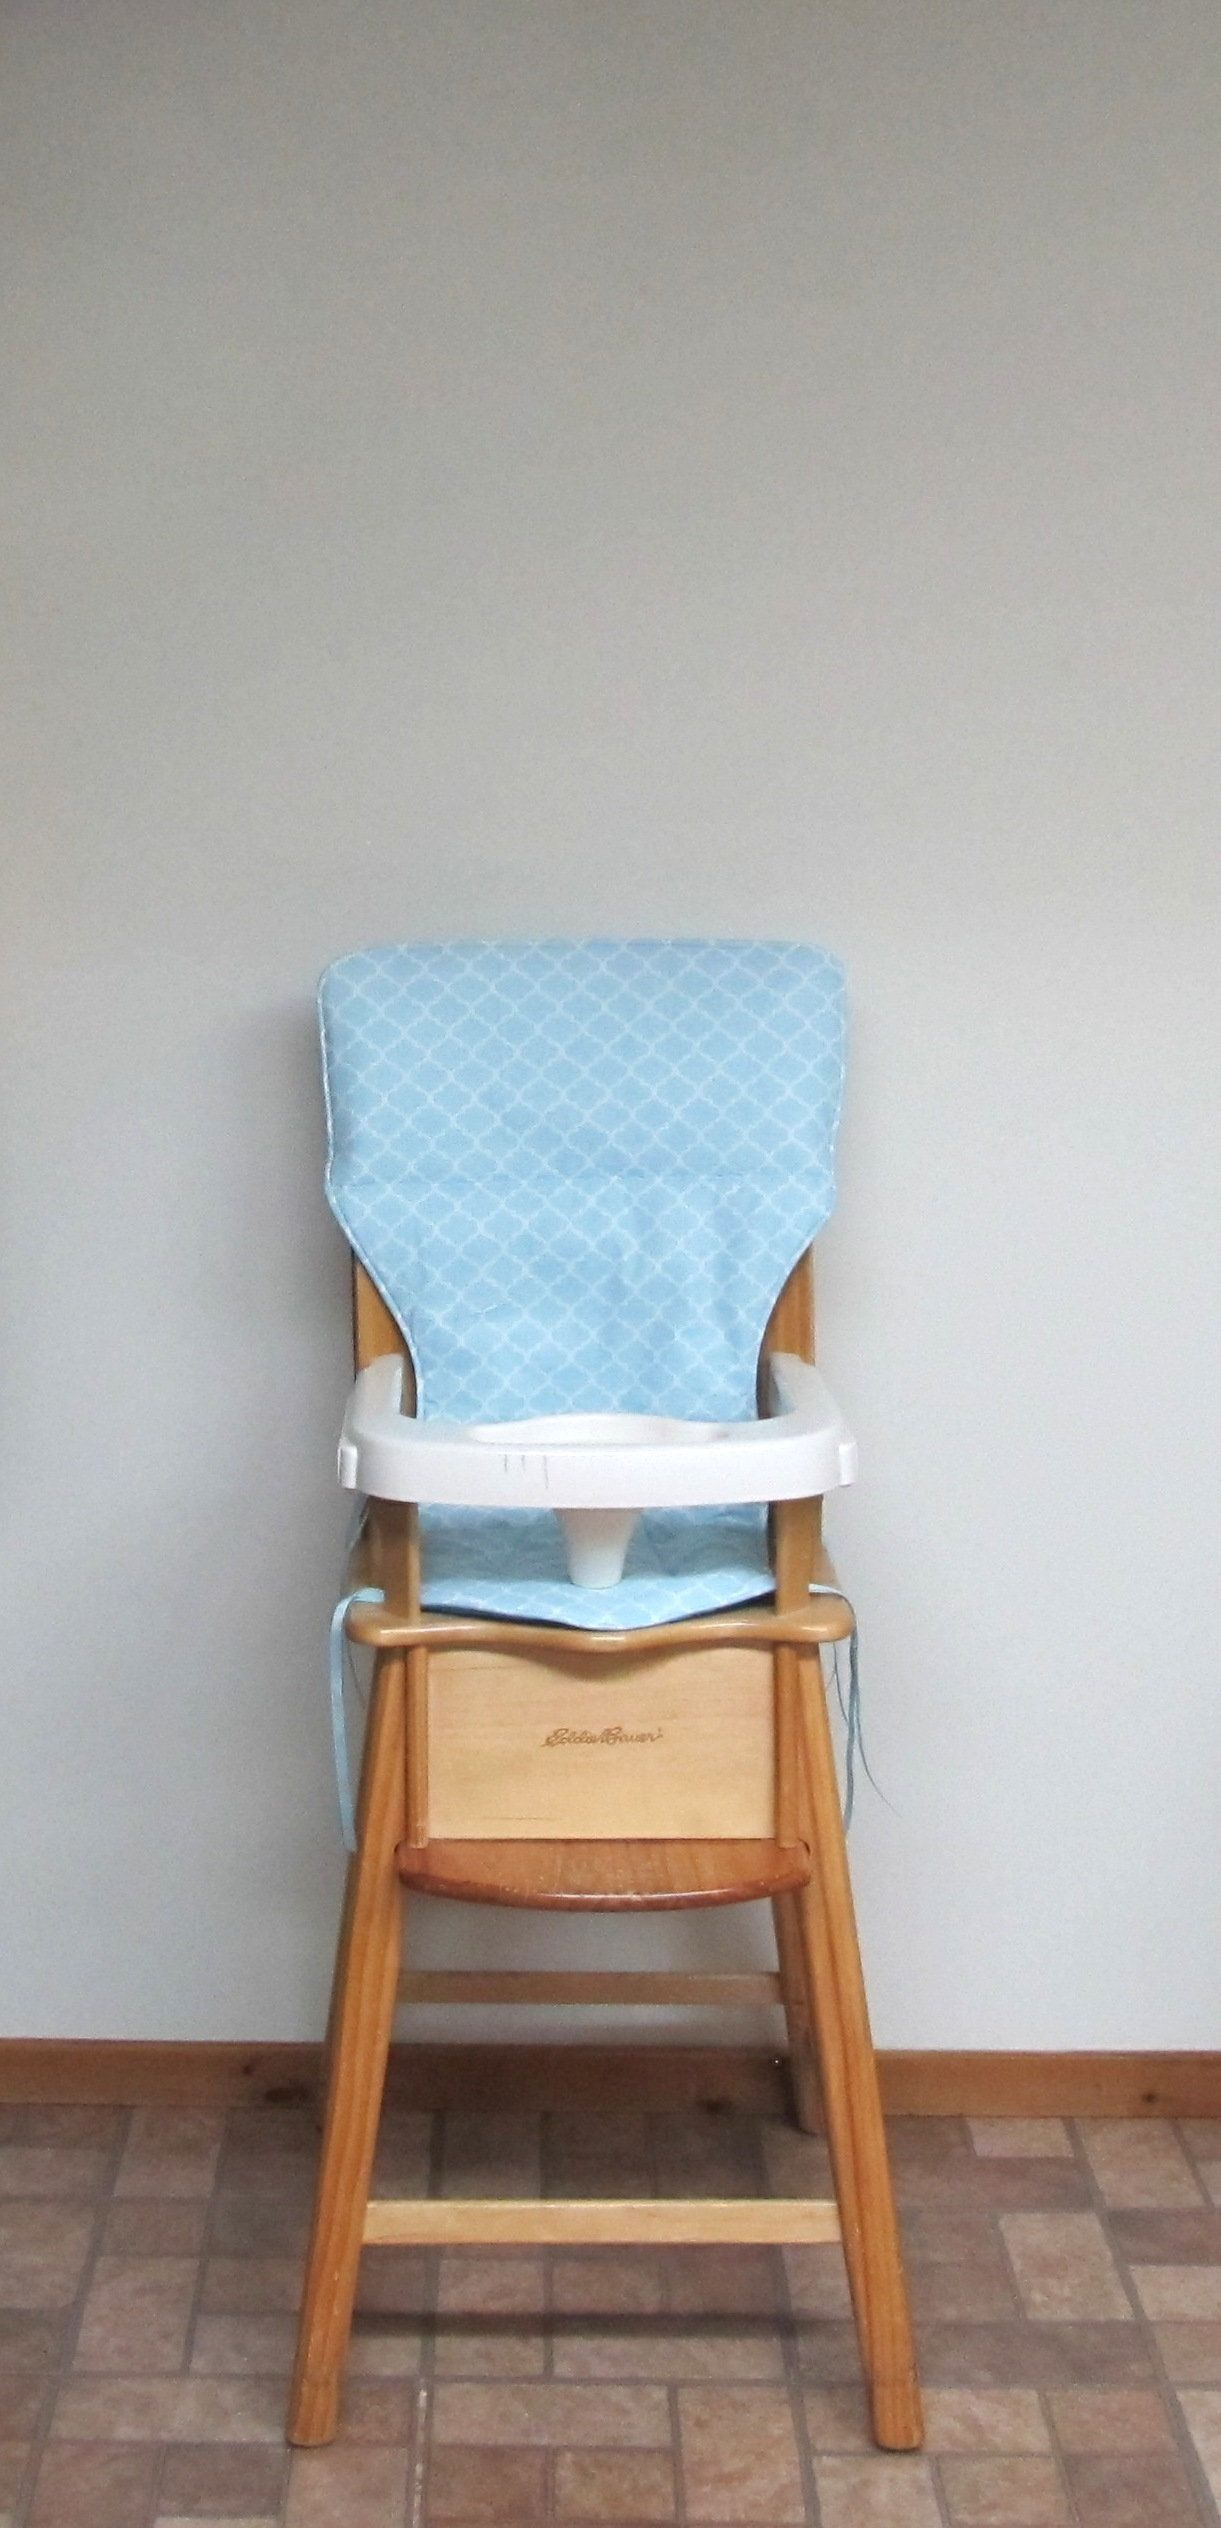 Eddie Bauer Replacement Childrens High Chair Cover Furniture